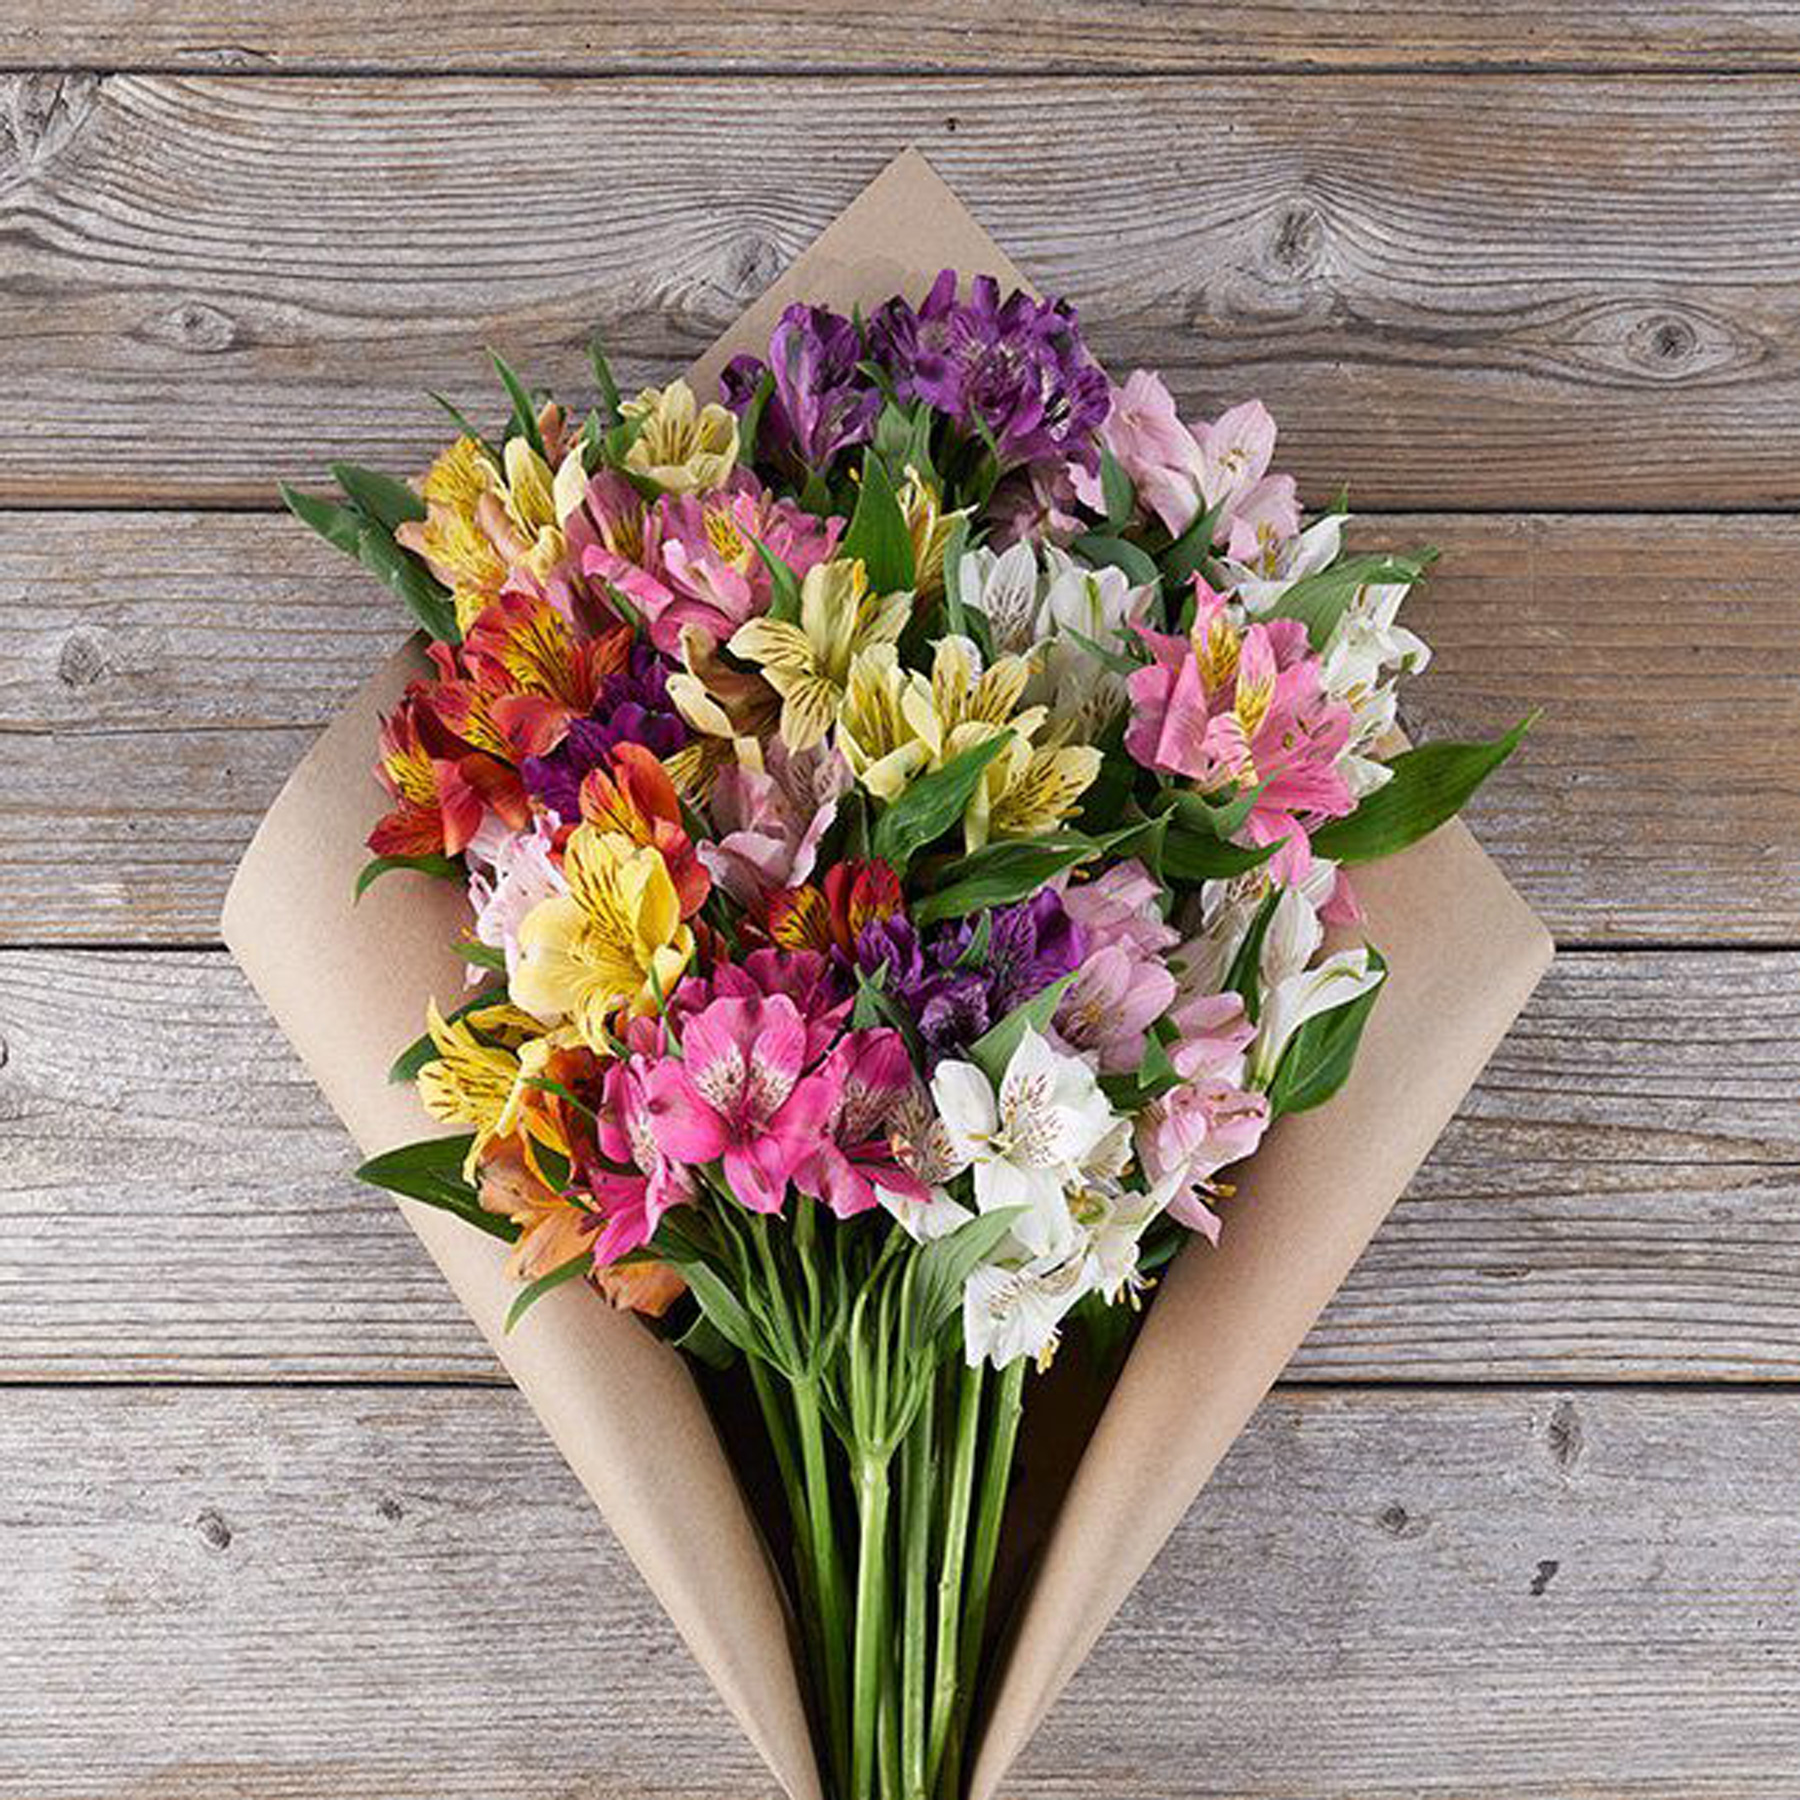 Engagement Gifts Ideas: The Bouqs flower delivery subsription